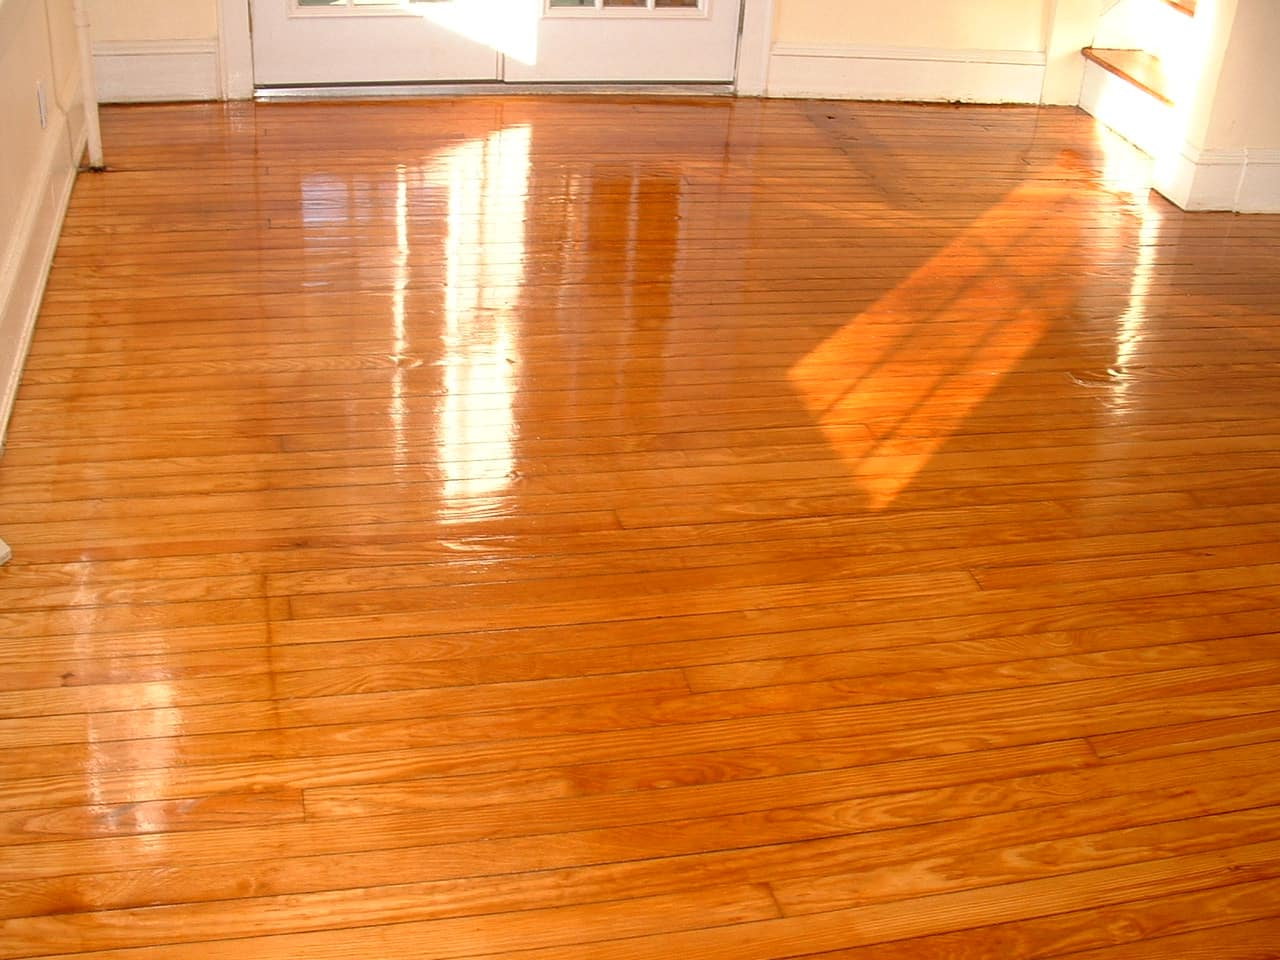 Refinish hardwood floors cost refinish hardwood floors nj for Hardwood flooring